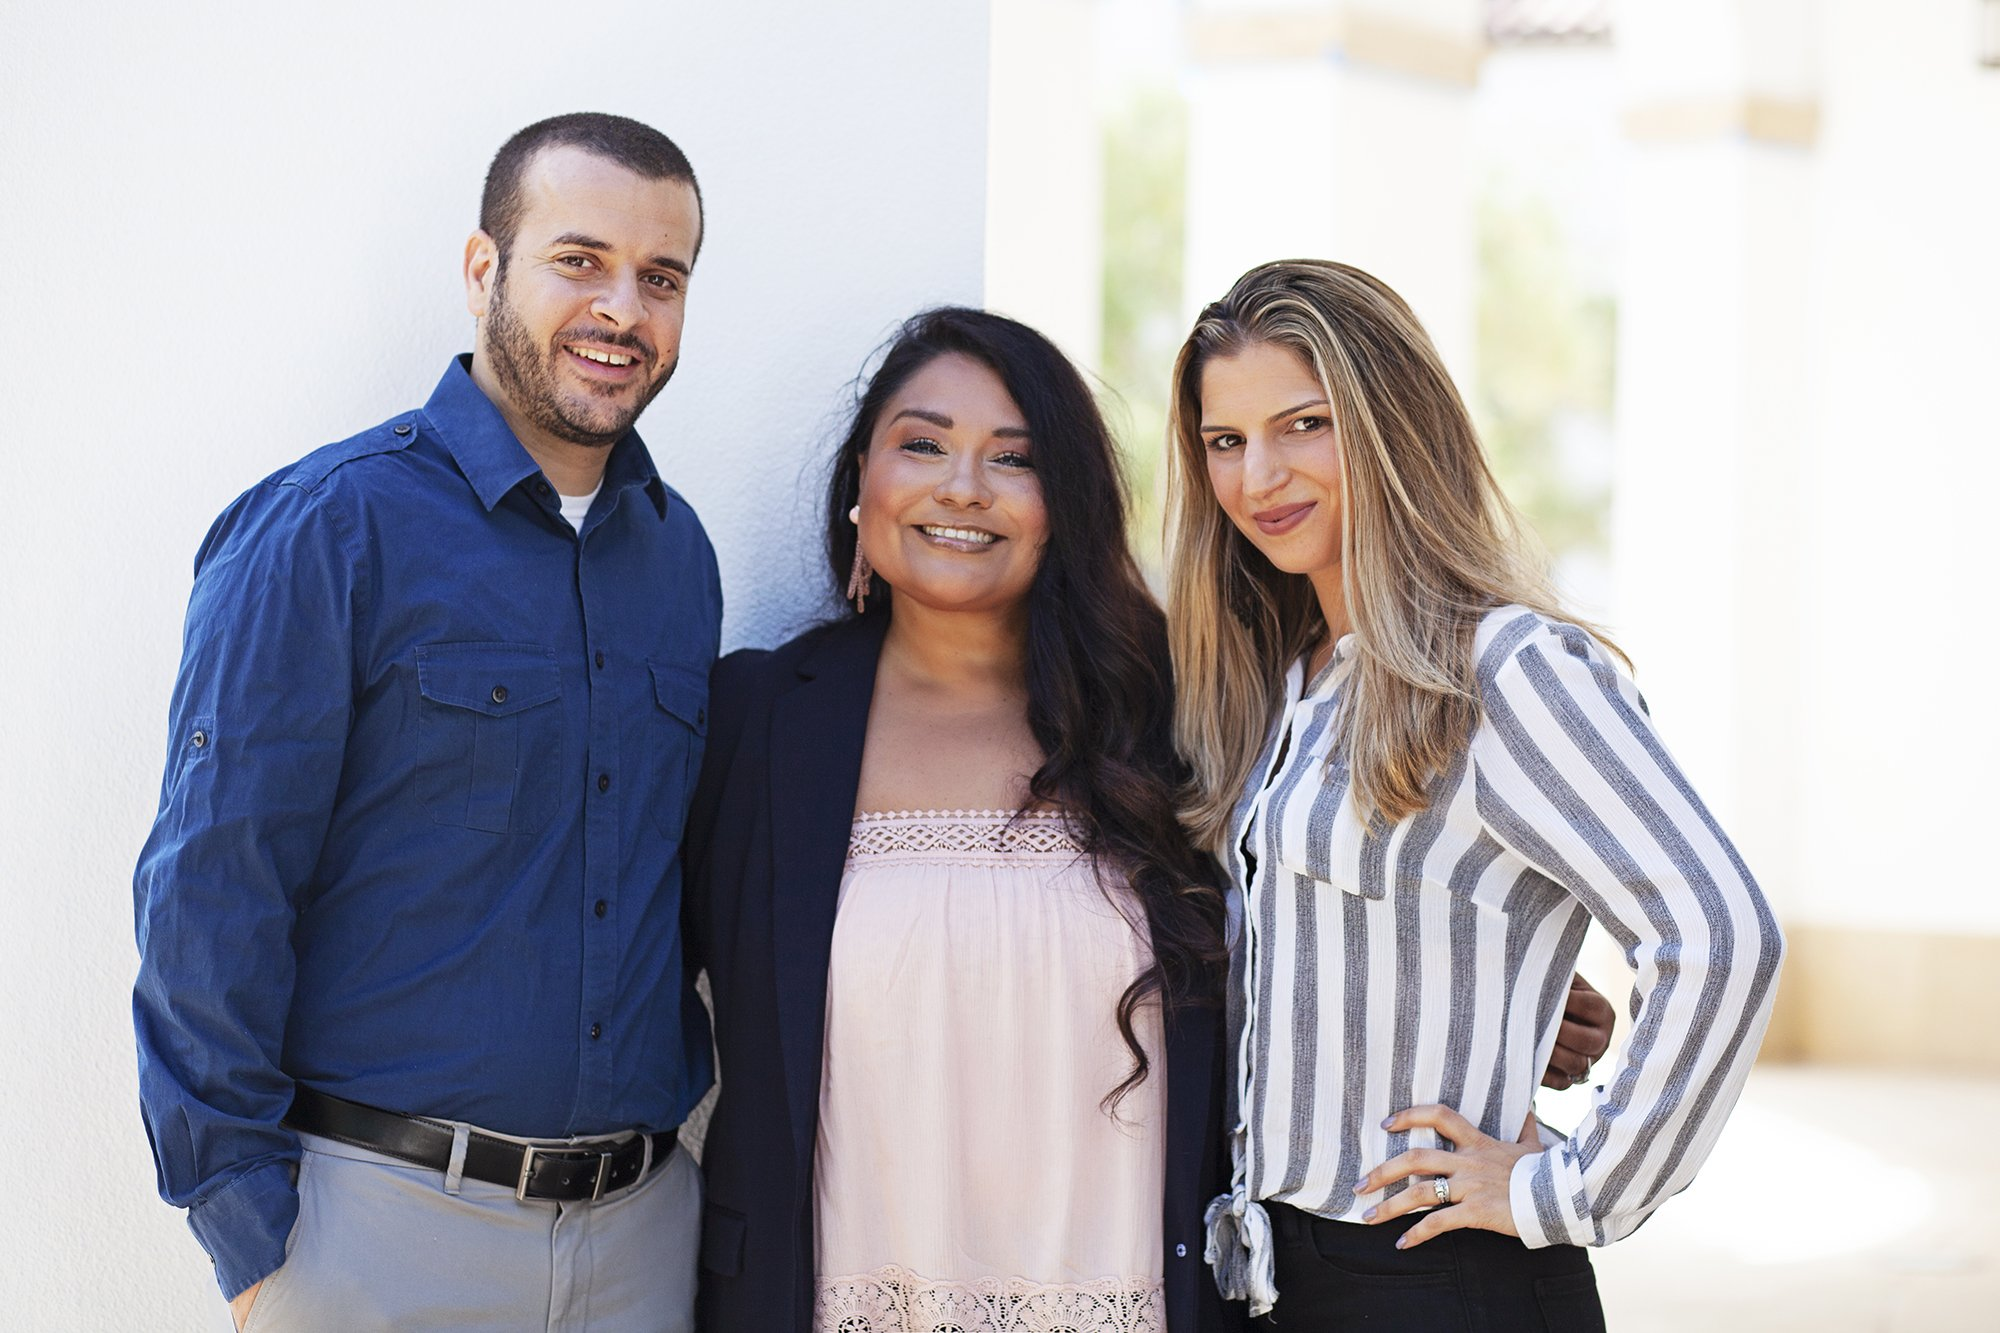 therapists in Simi Valley, Ca